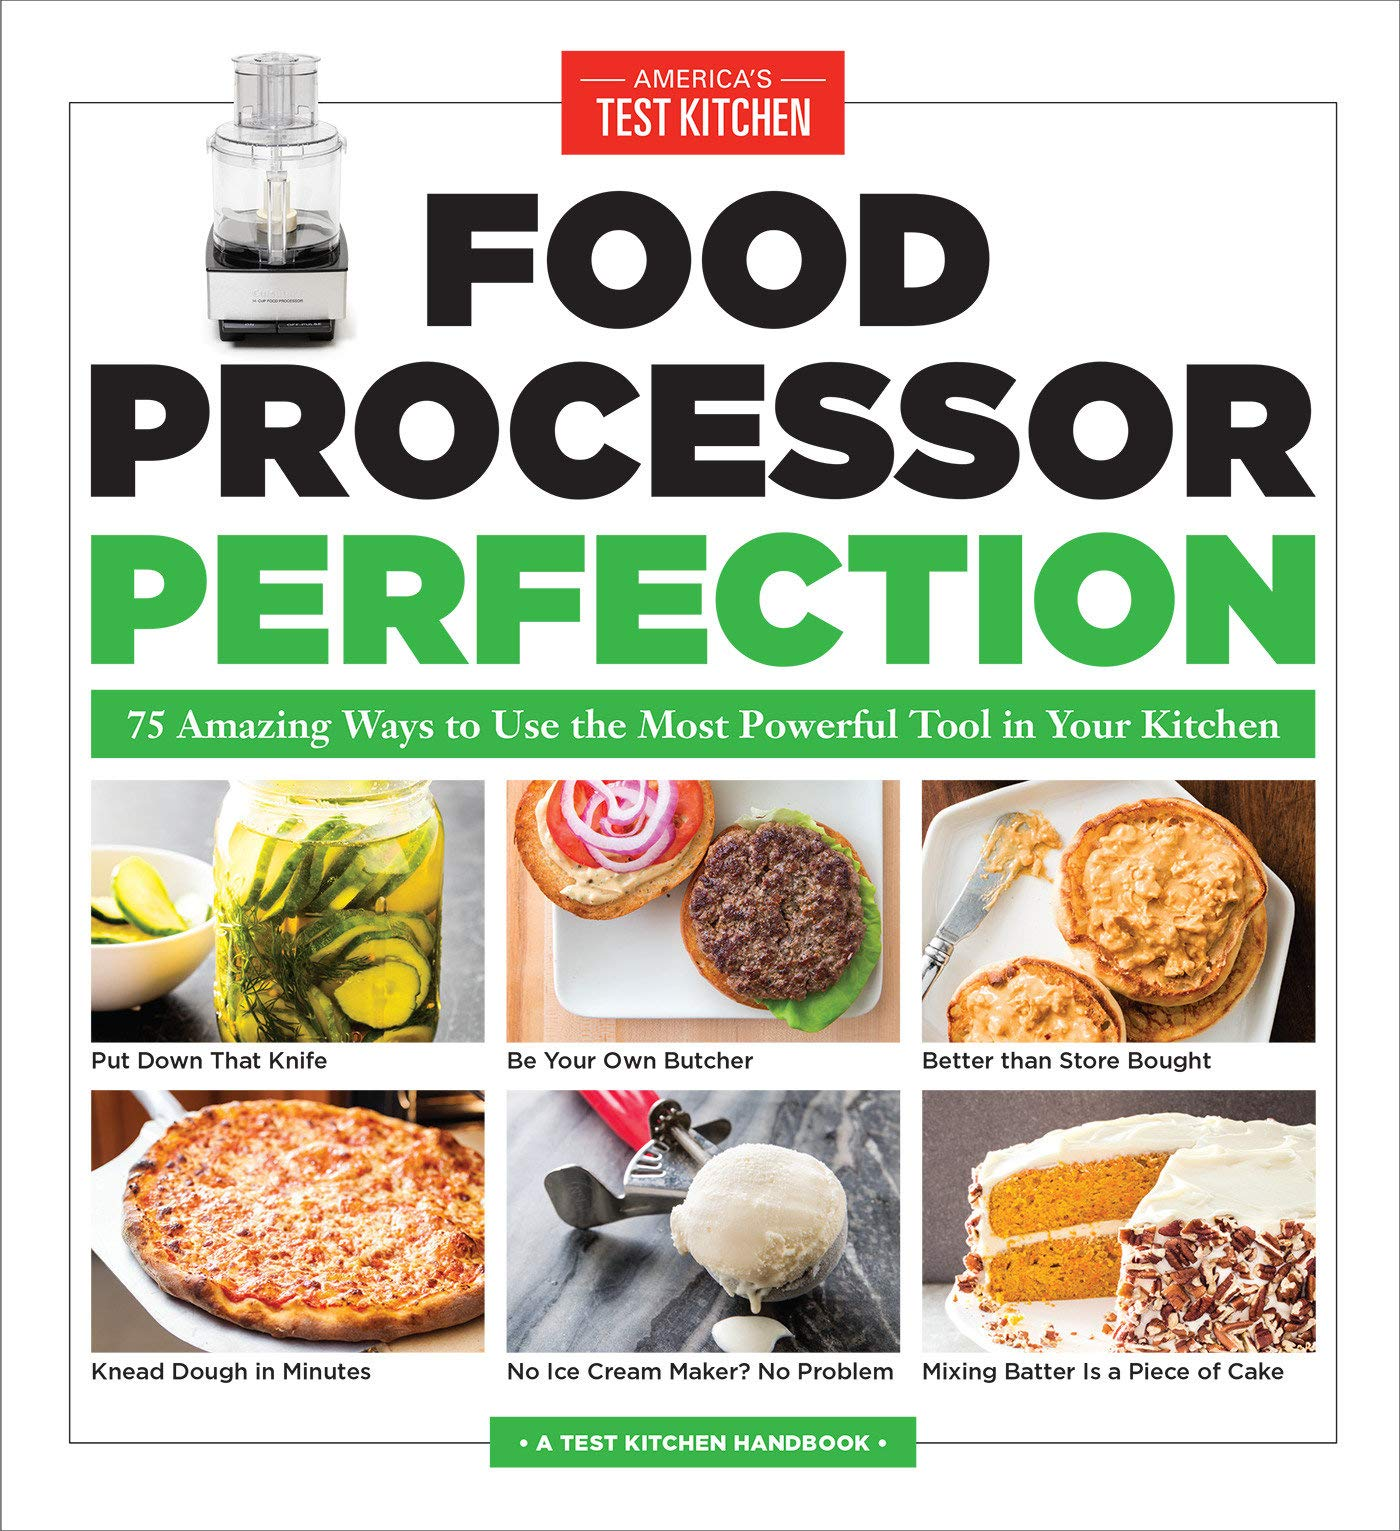 Tremendous Food Processor Perfection 75 Amazing Ways To Use The Most Interior Design Ideas Gresisoteloinfo